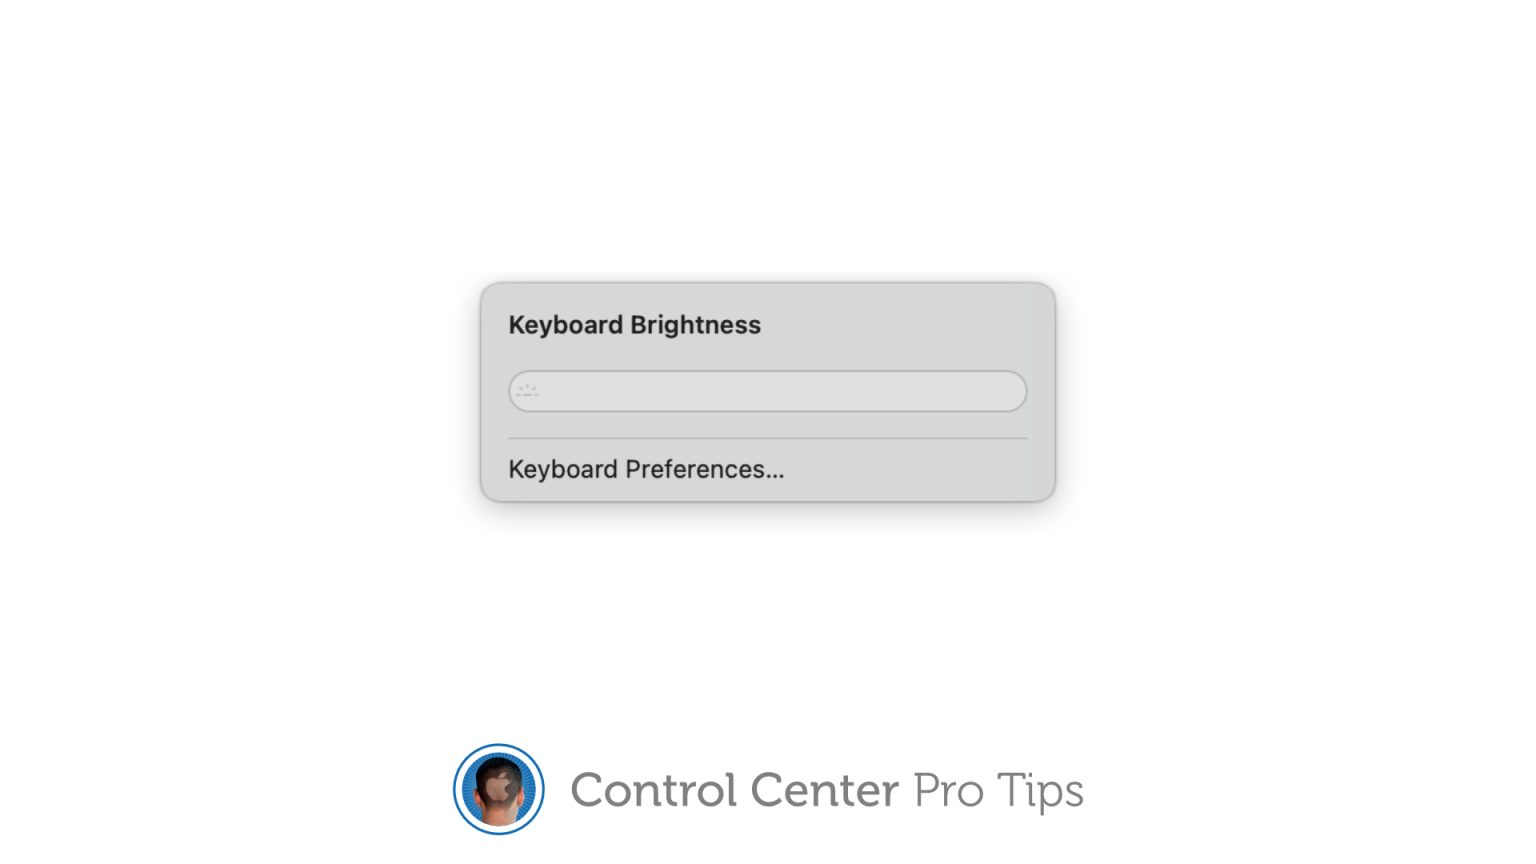 How to adjust keyboard brightness using Control Center